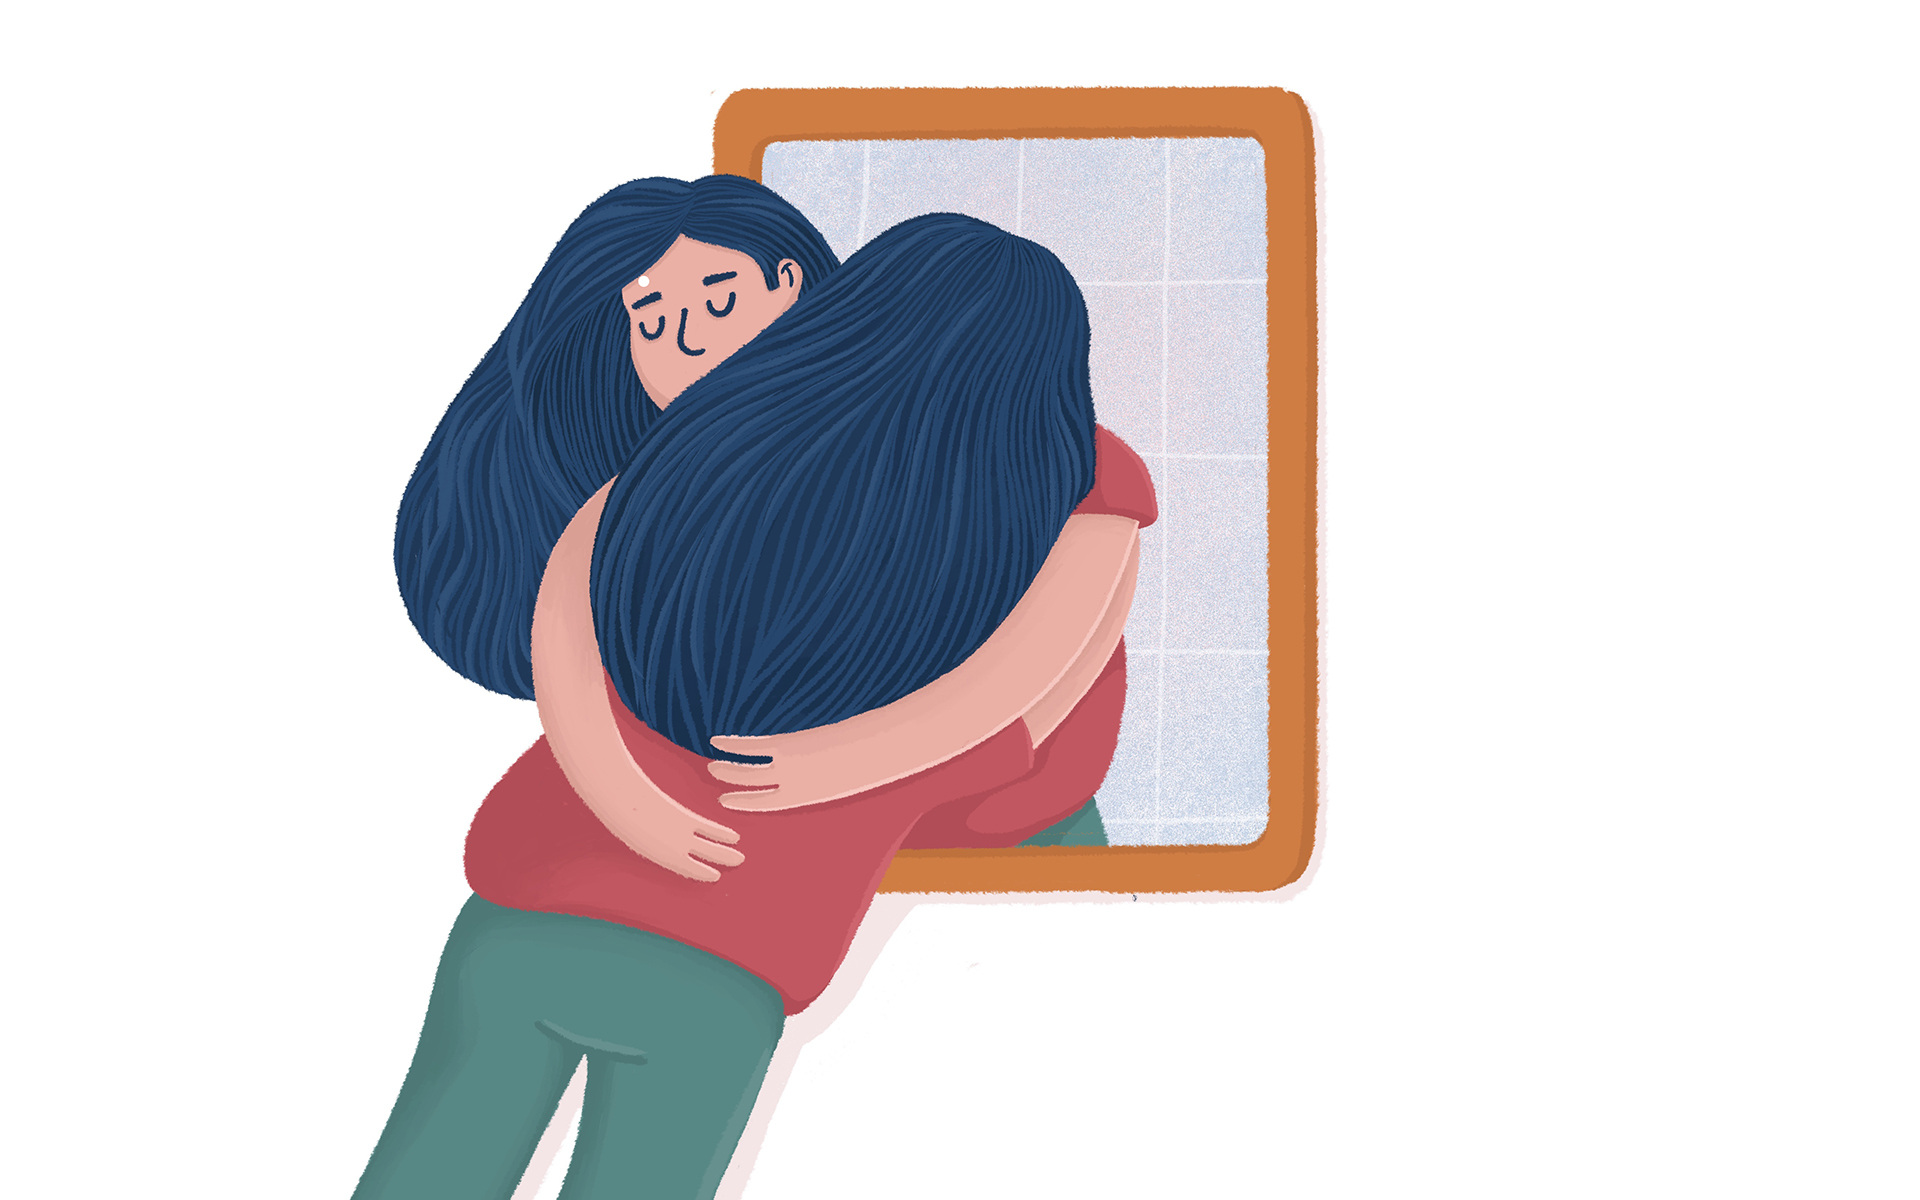 There's someone missing in your friend circle: you - Woman hugging her reflection, self acceptance